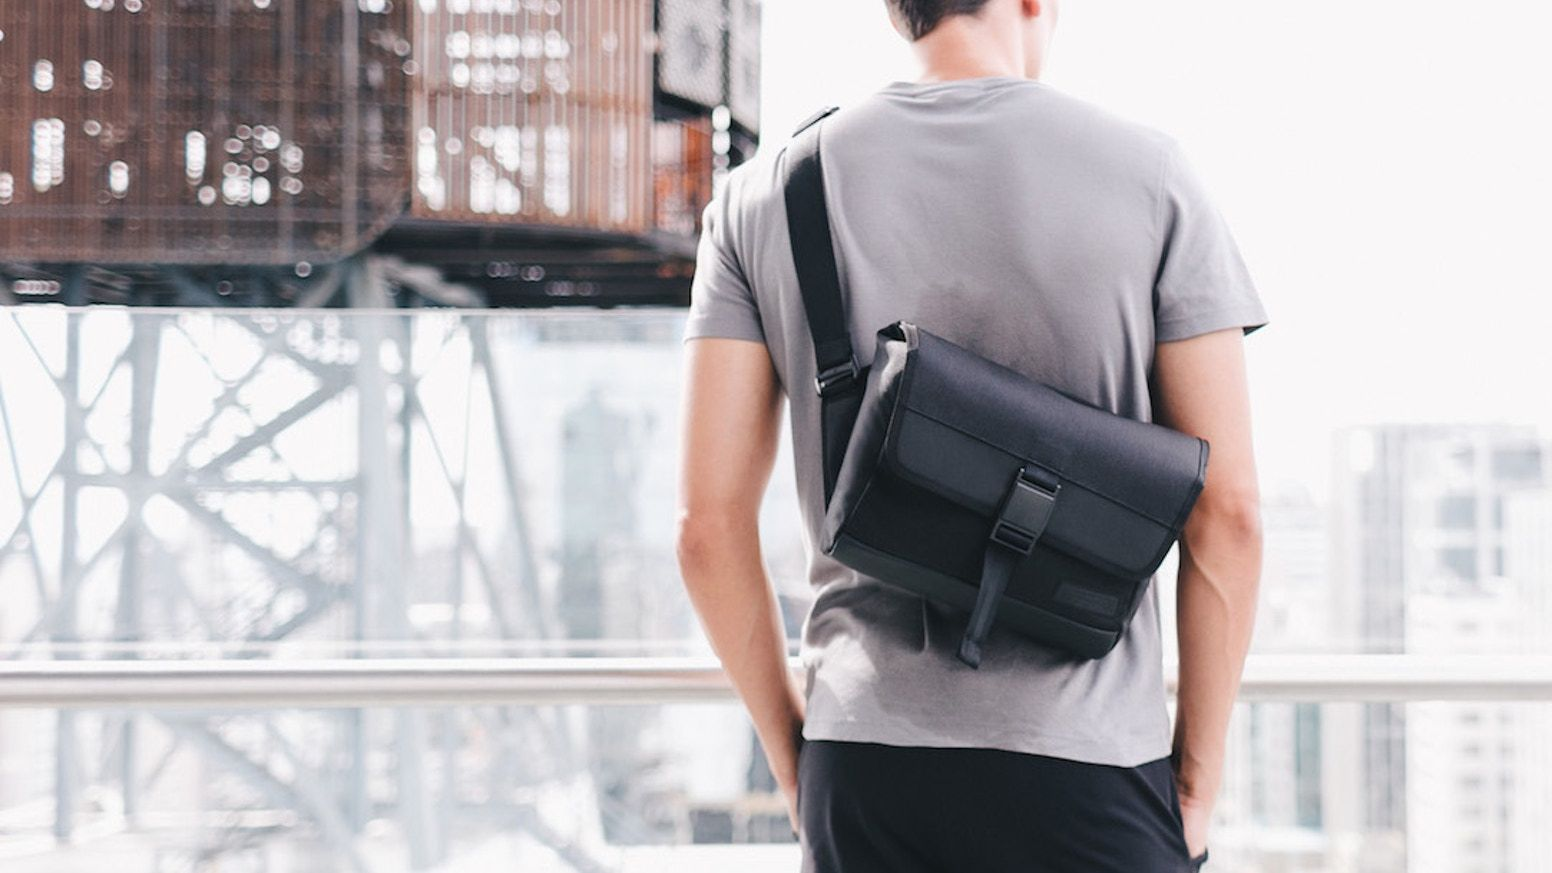 Farer Design Is Raising Funds For Dayfarer Sling For The One Who Packs Light And Moves Quick On Kickstarter The Pe Classic Briefcase Packing Light Sling Bag